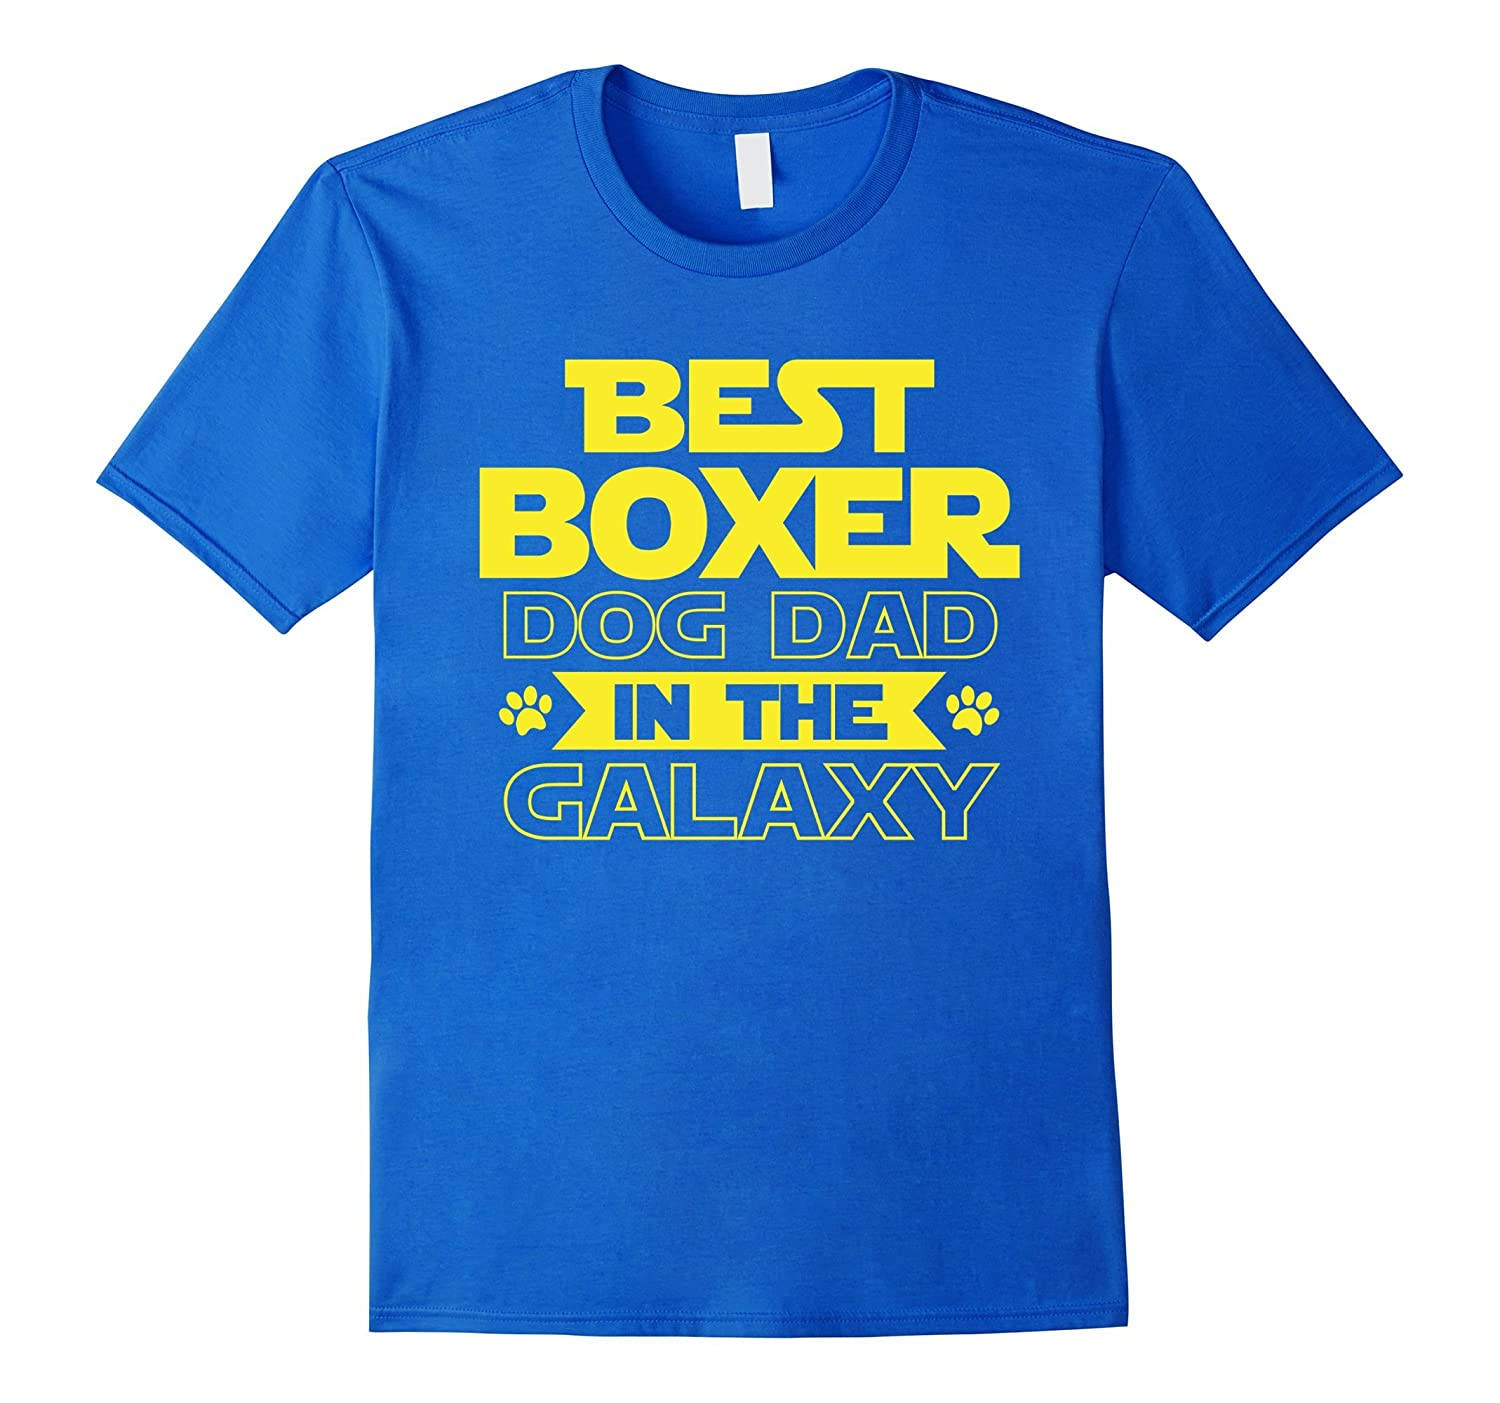 958cb115b Mens Best Boxer Dad in the Galaxy T-Shirt-ah my shirt one gift ...